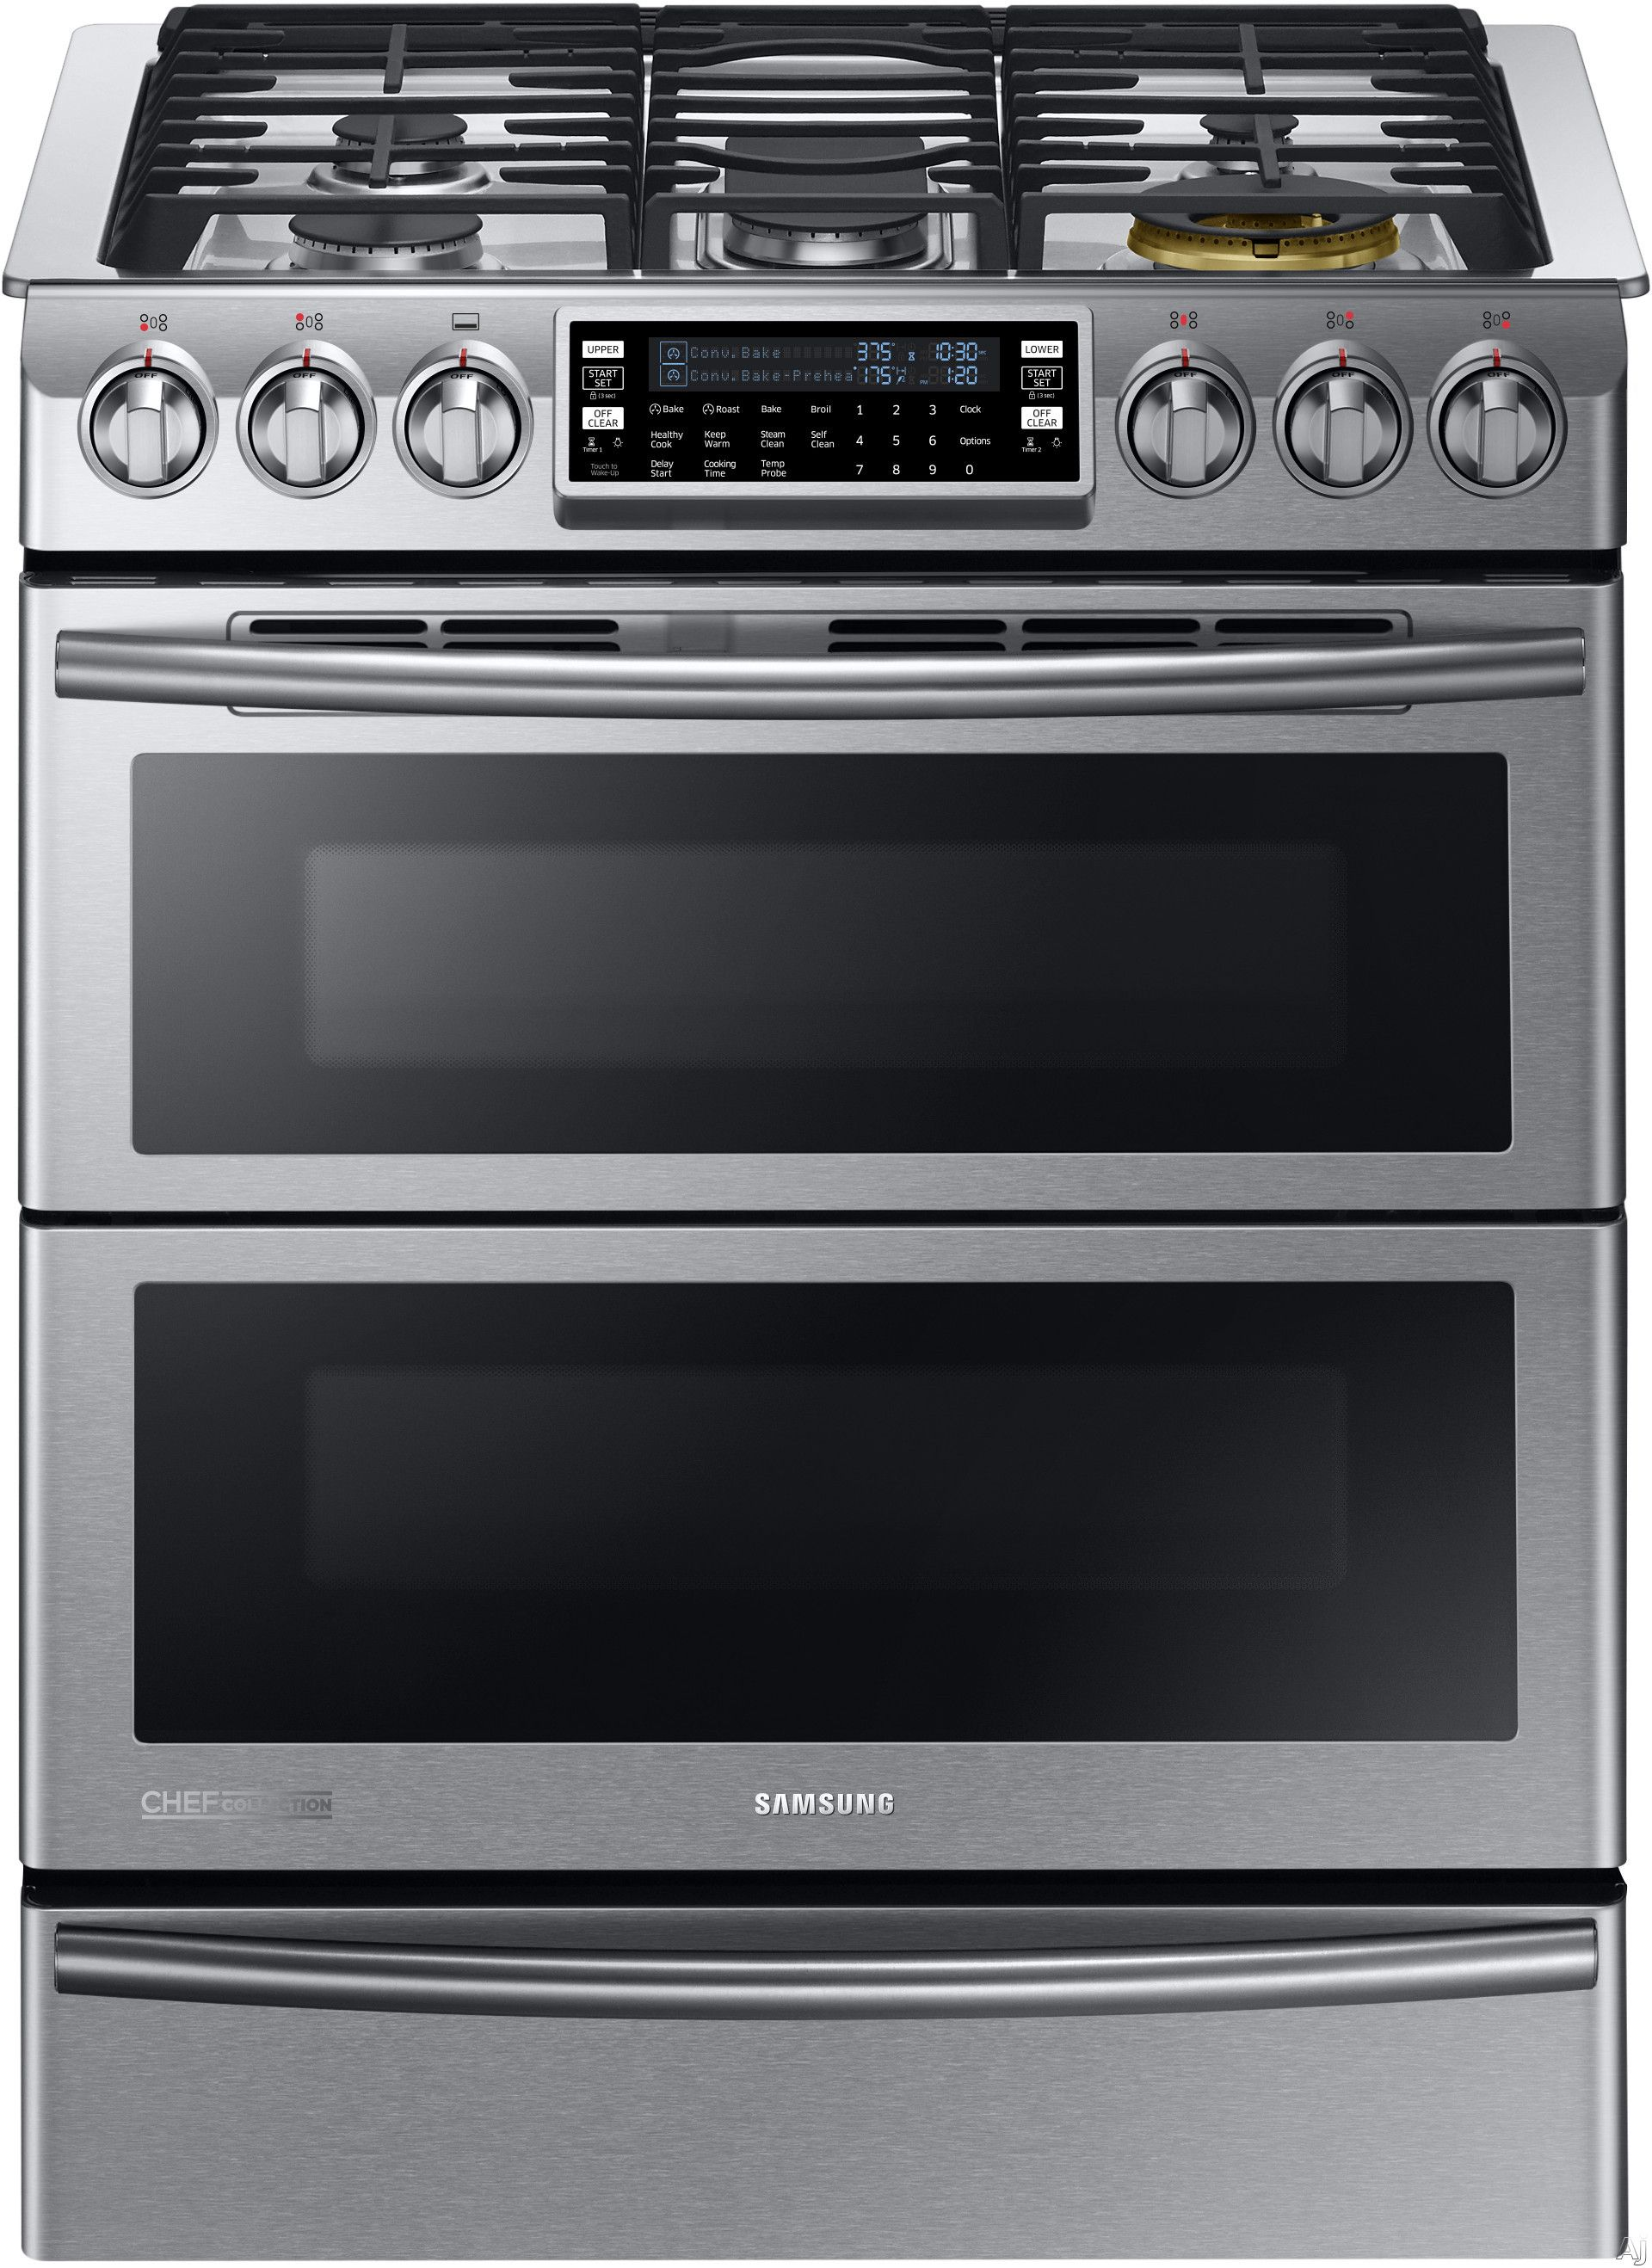 Samsung Ny58j9850ws 30 Inch Slide In Dual Fuel Range With 5 Sealed Burners 8 Cu Ft Flex Duo True Convection Oven 22 000 Btu Br Burner